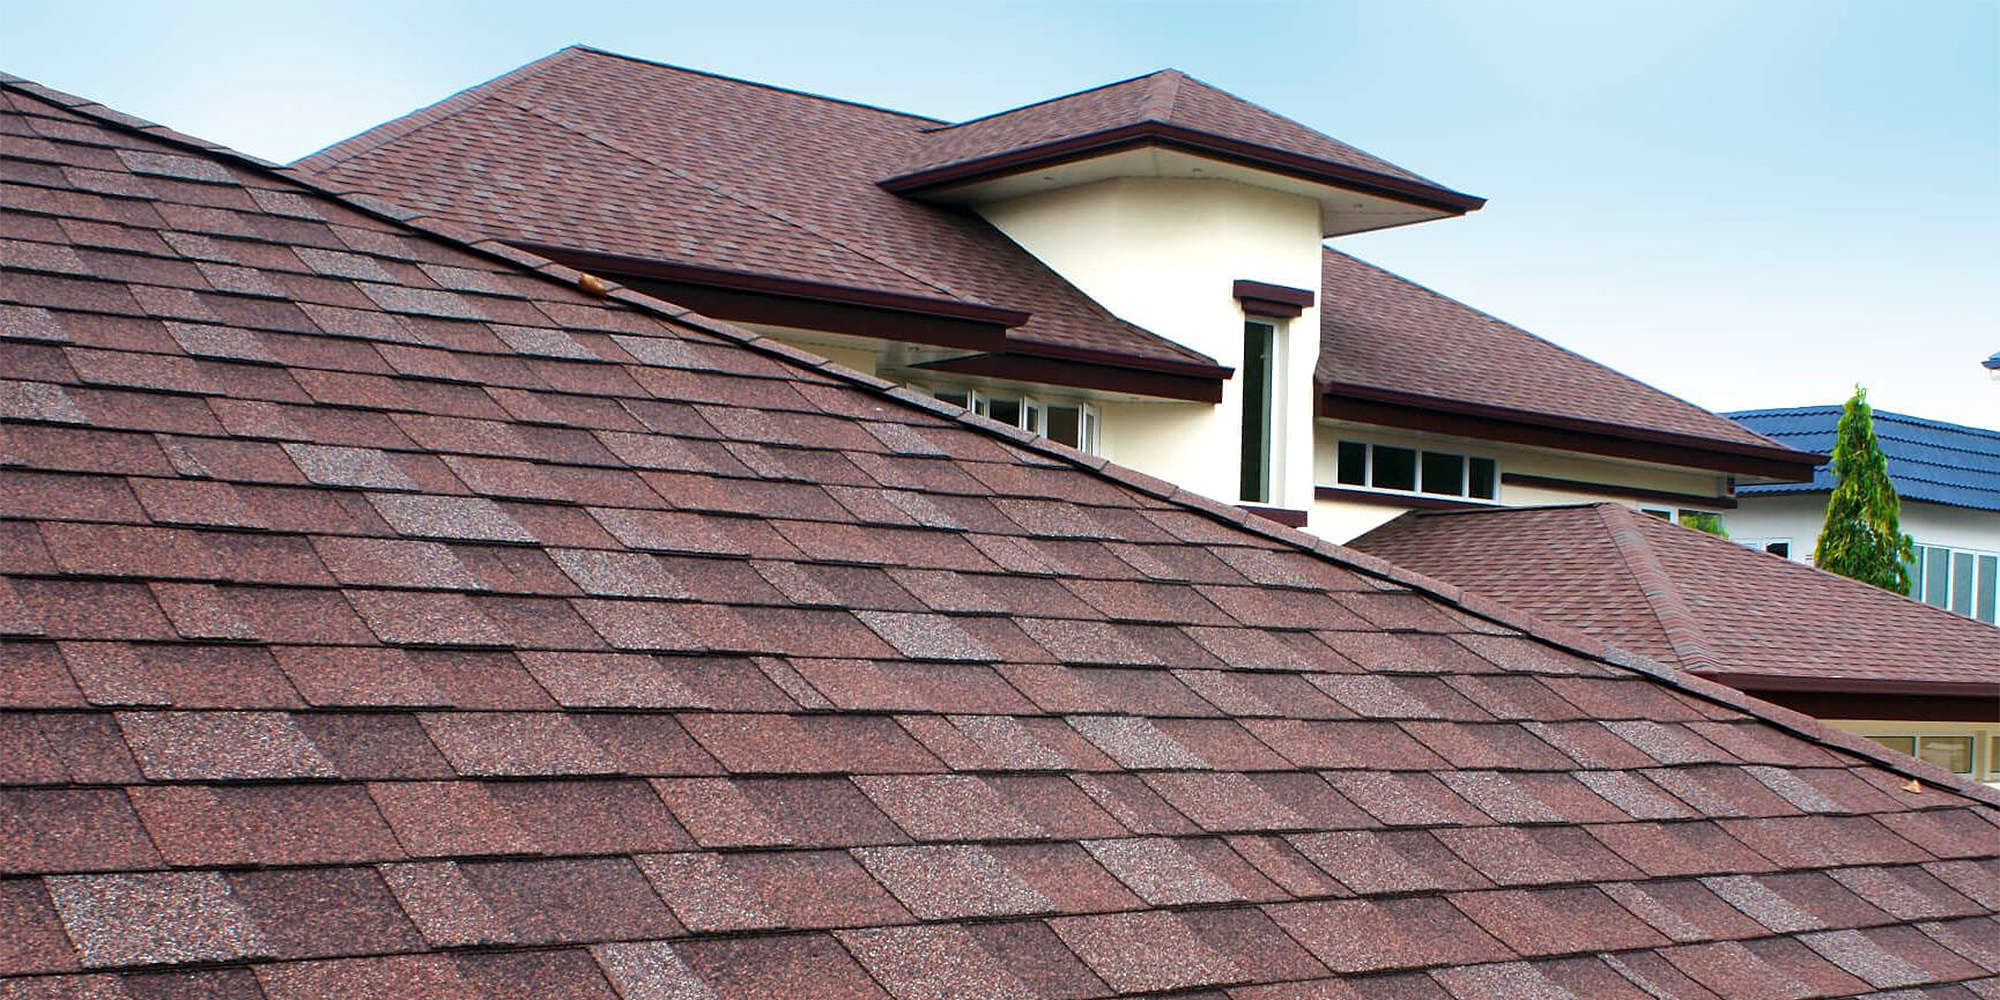 Protect Your Home with Asphalt Shingles   Get a roof that stands up to decades of weathering, is low maintenance, and comes in hundreds of colors and styles.   Contact Us